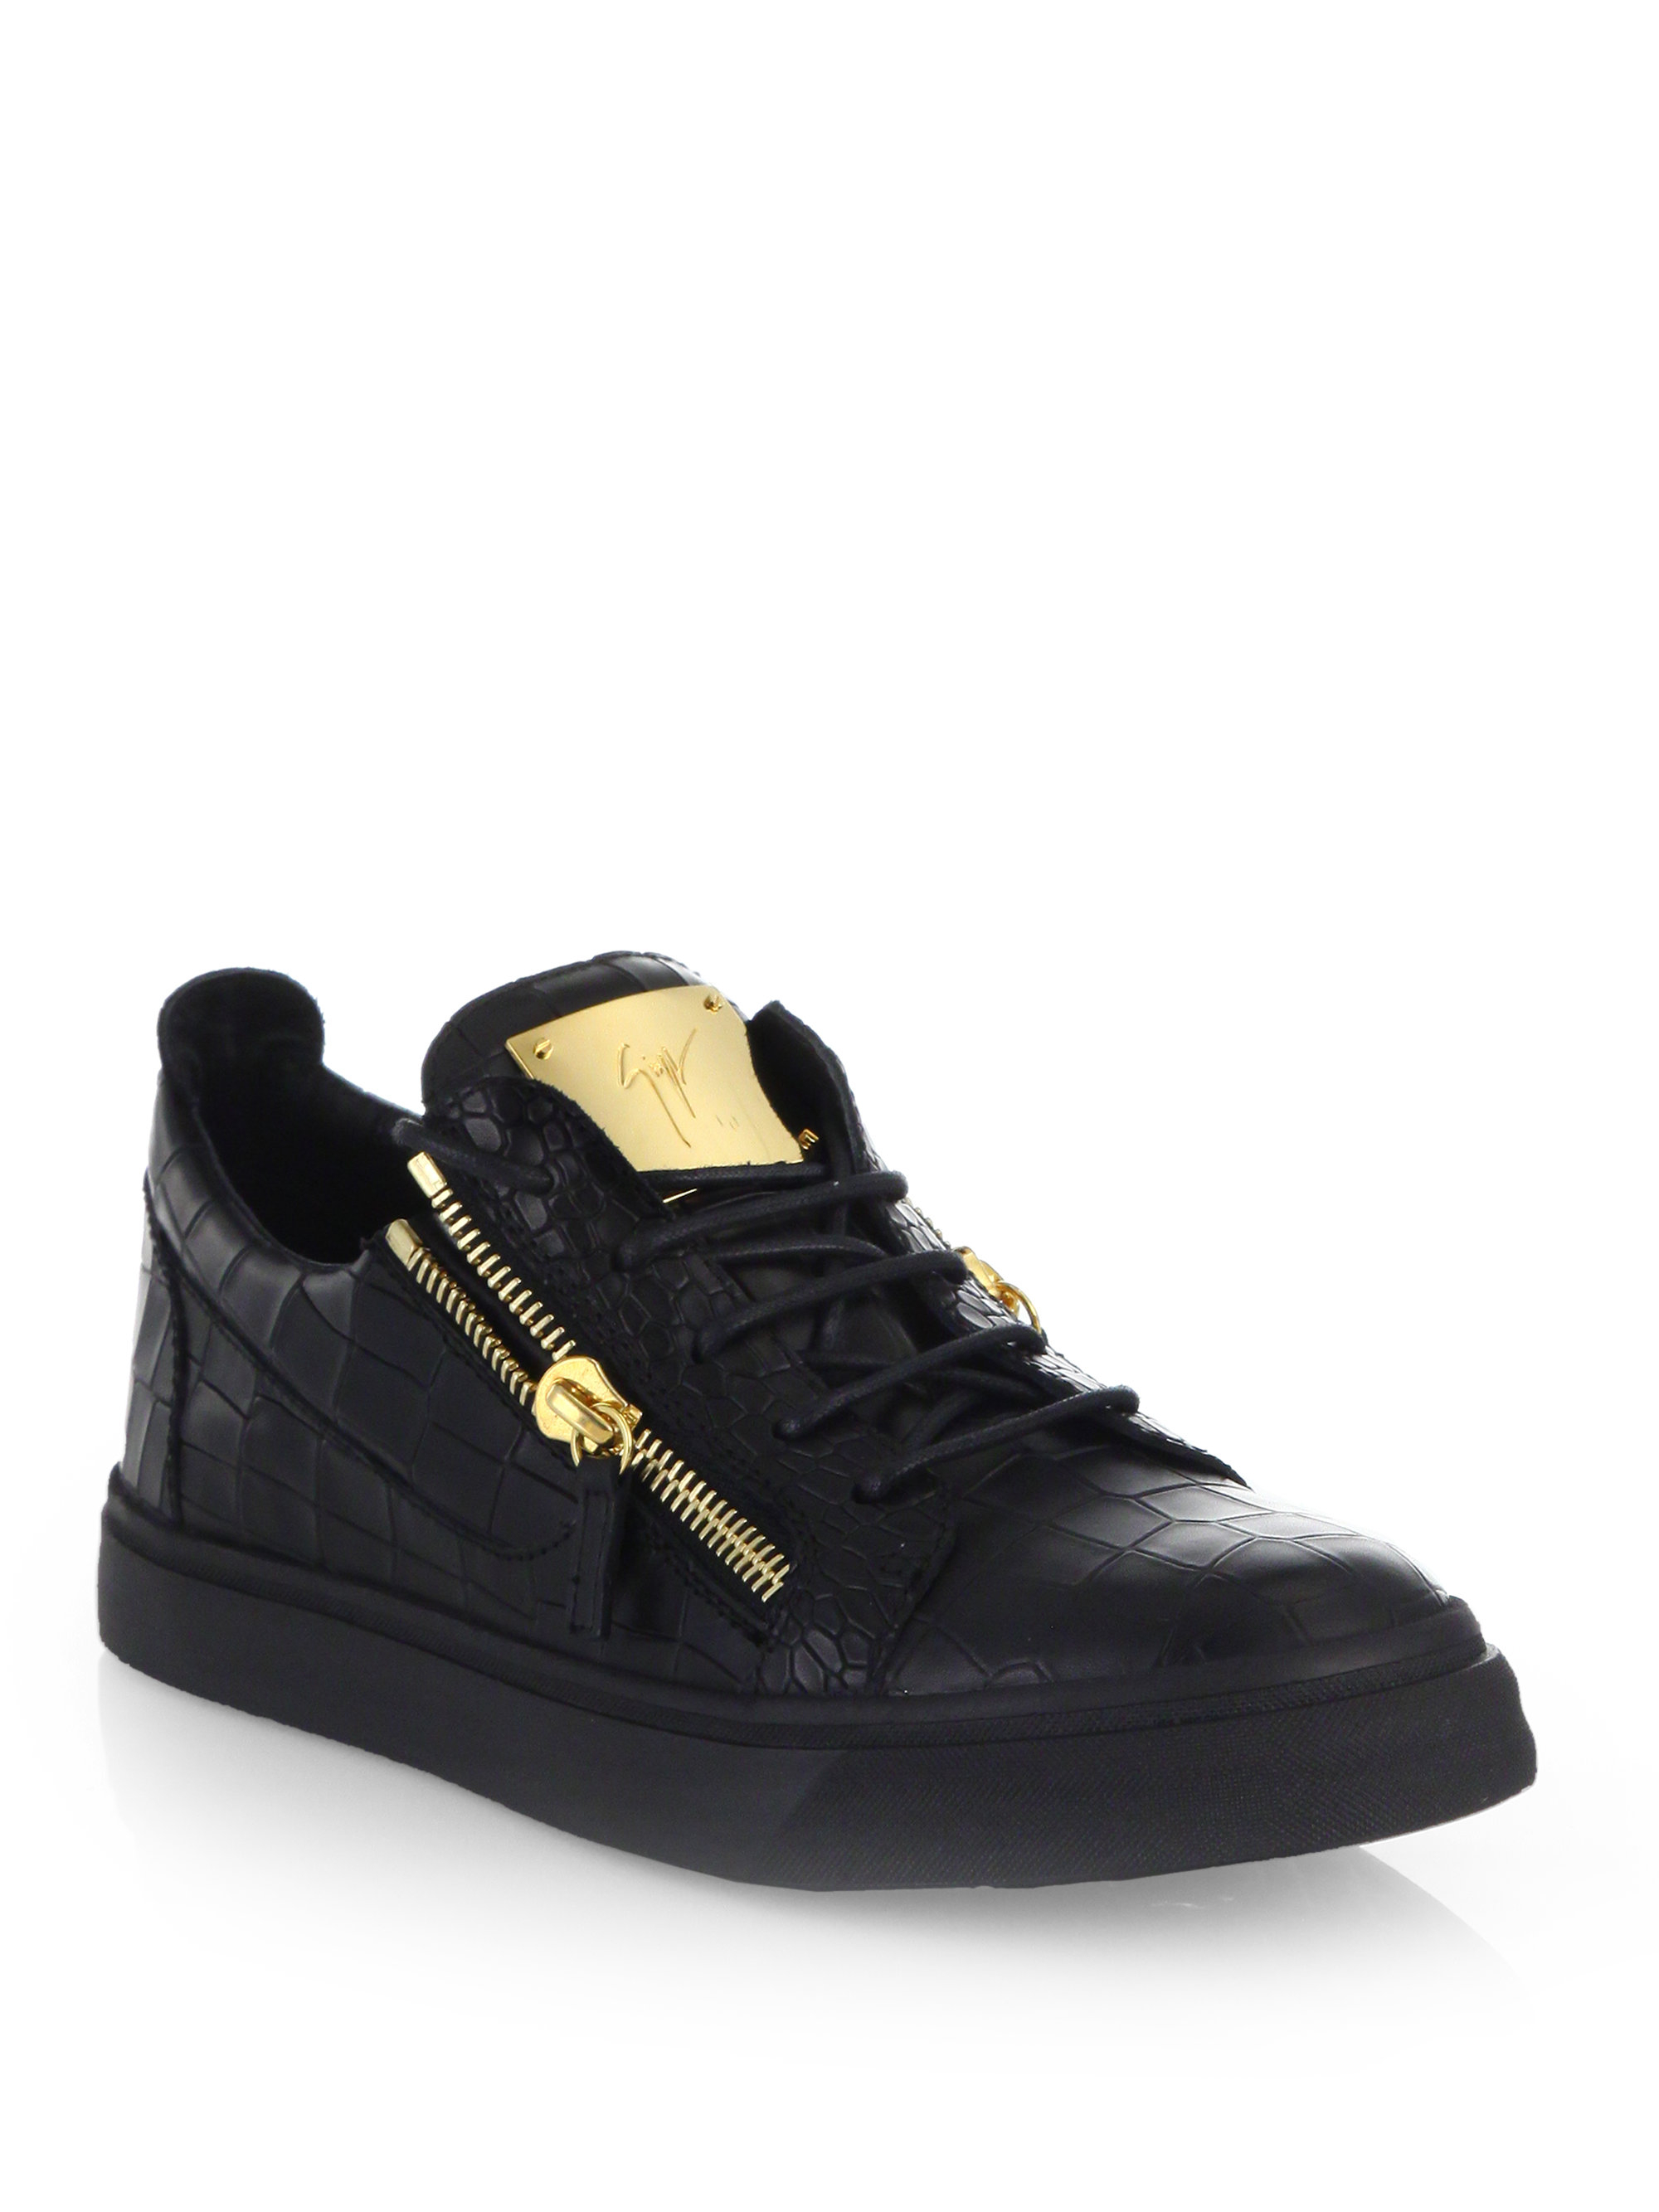 Giuseppe zanotti Leather Croc-embossed Low-top Sneakers in ...